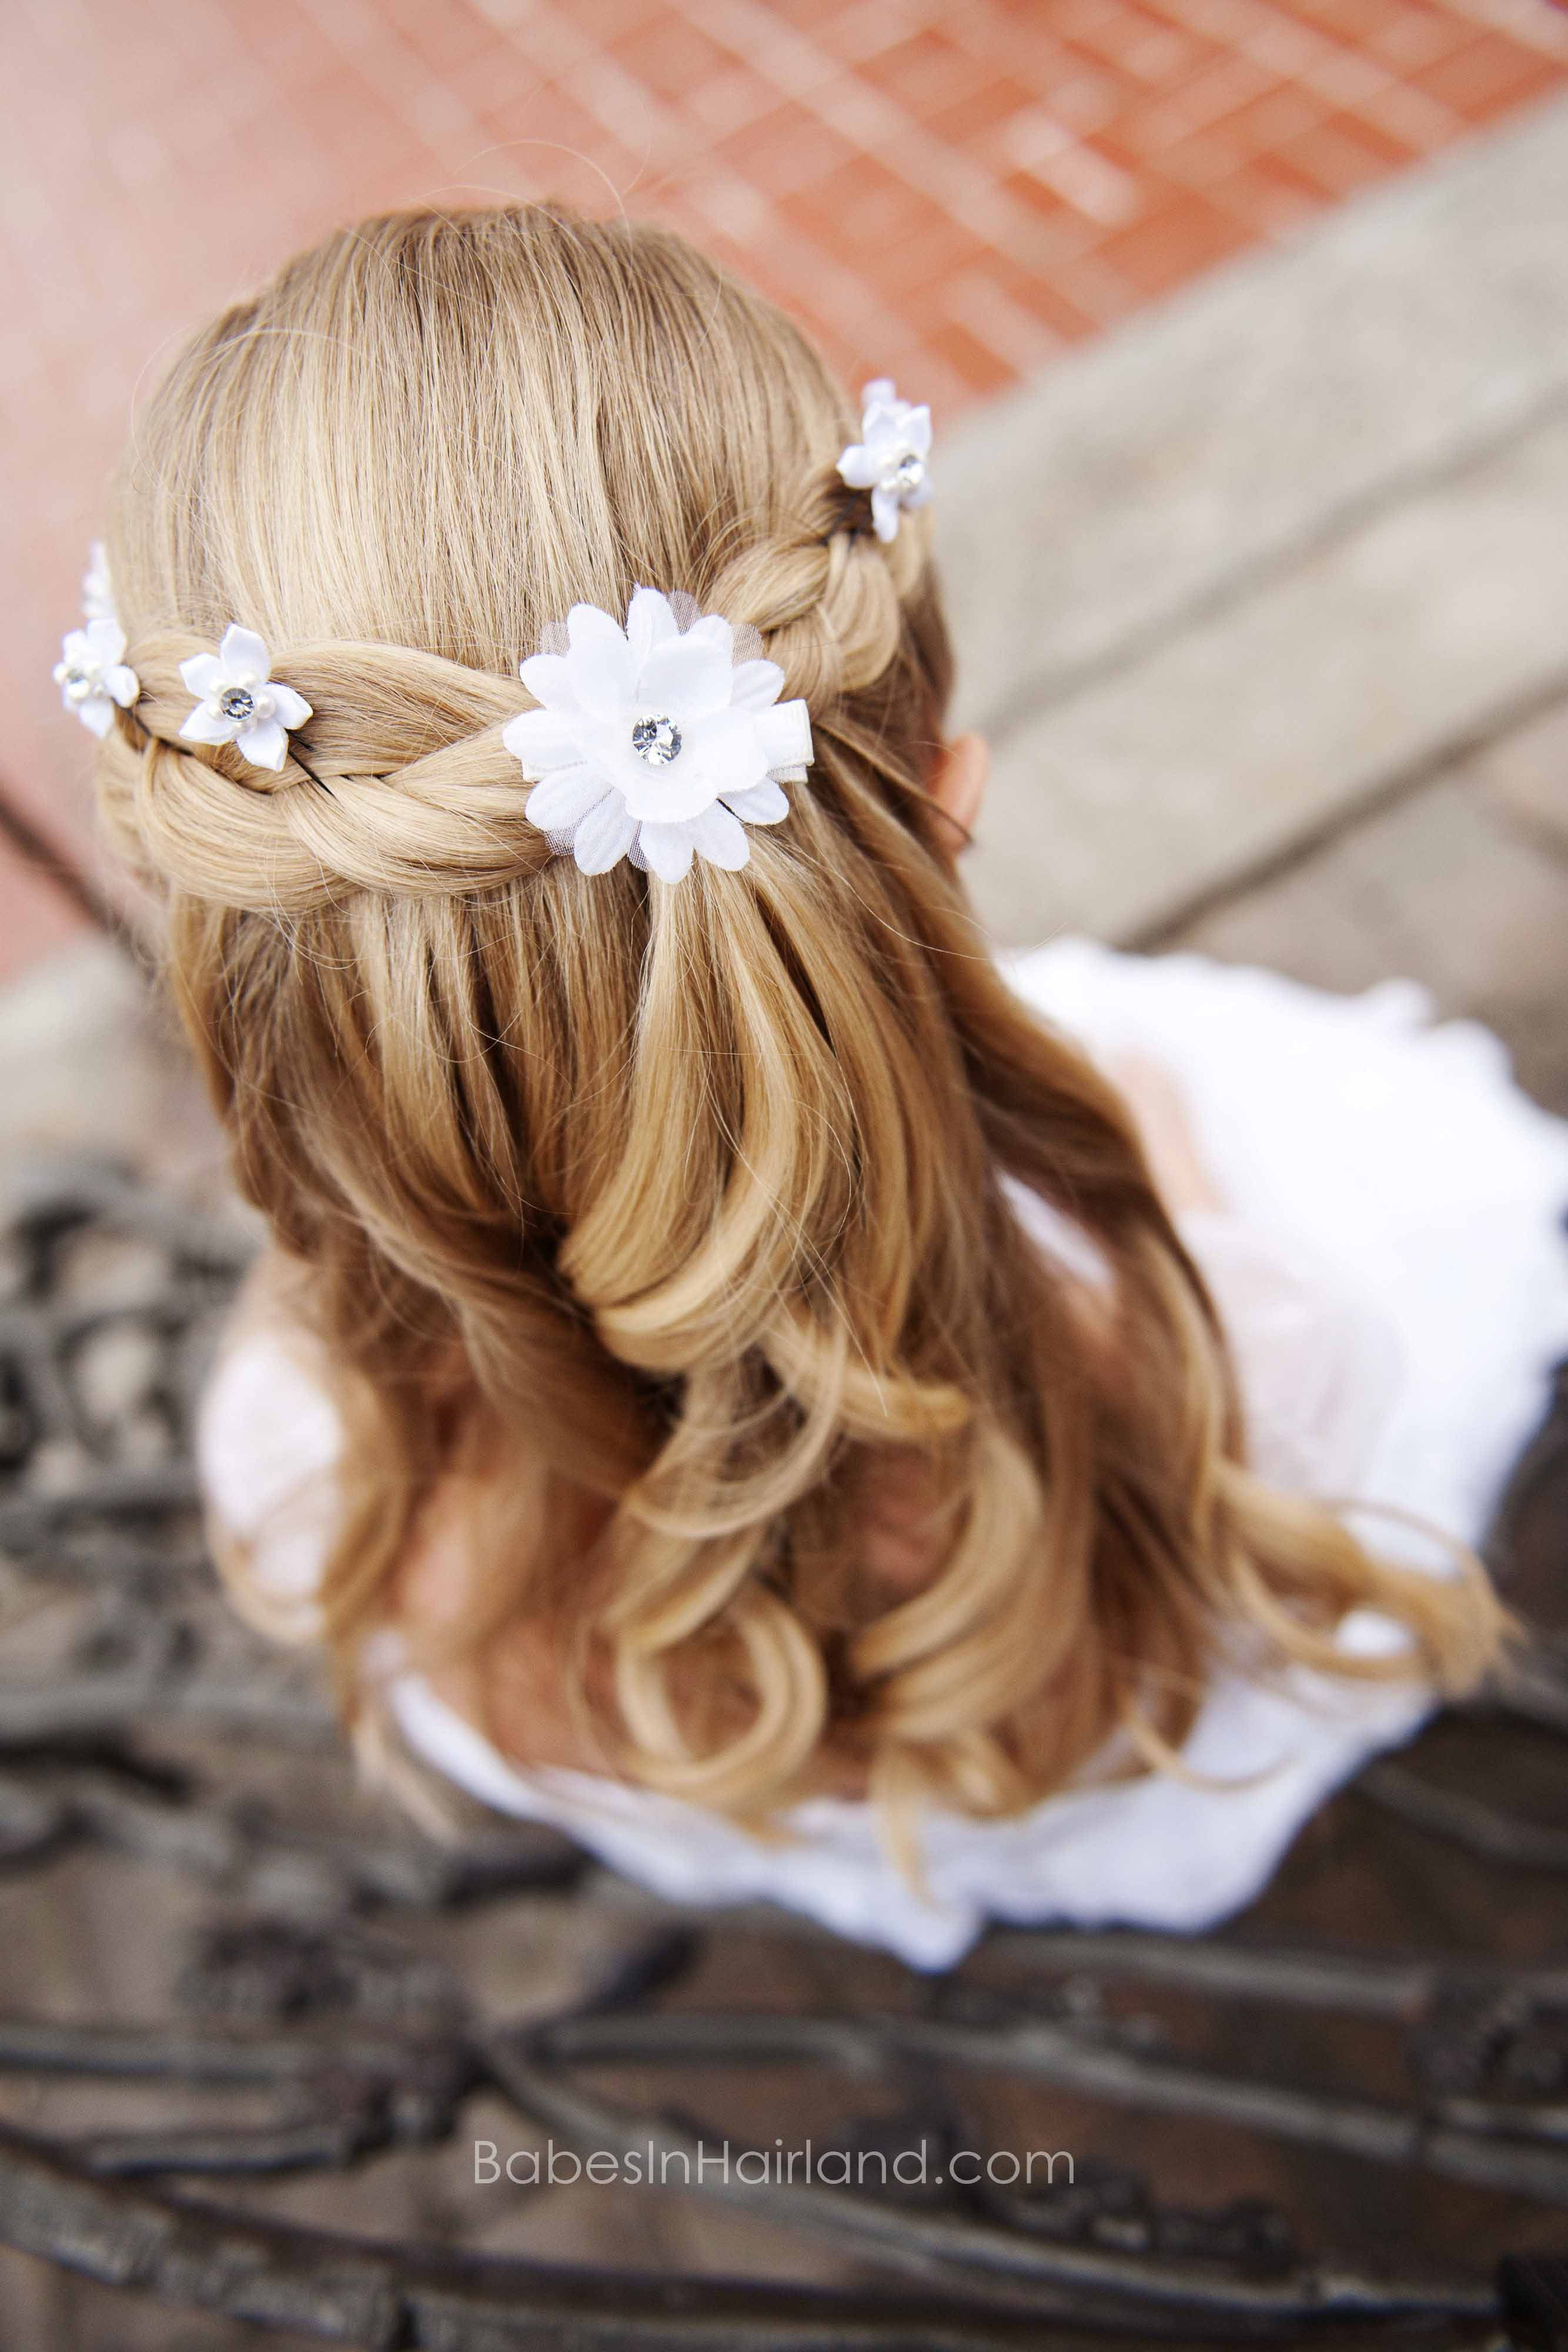 baptism hairstyle from babesinhairland | for the kiddos